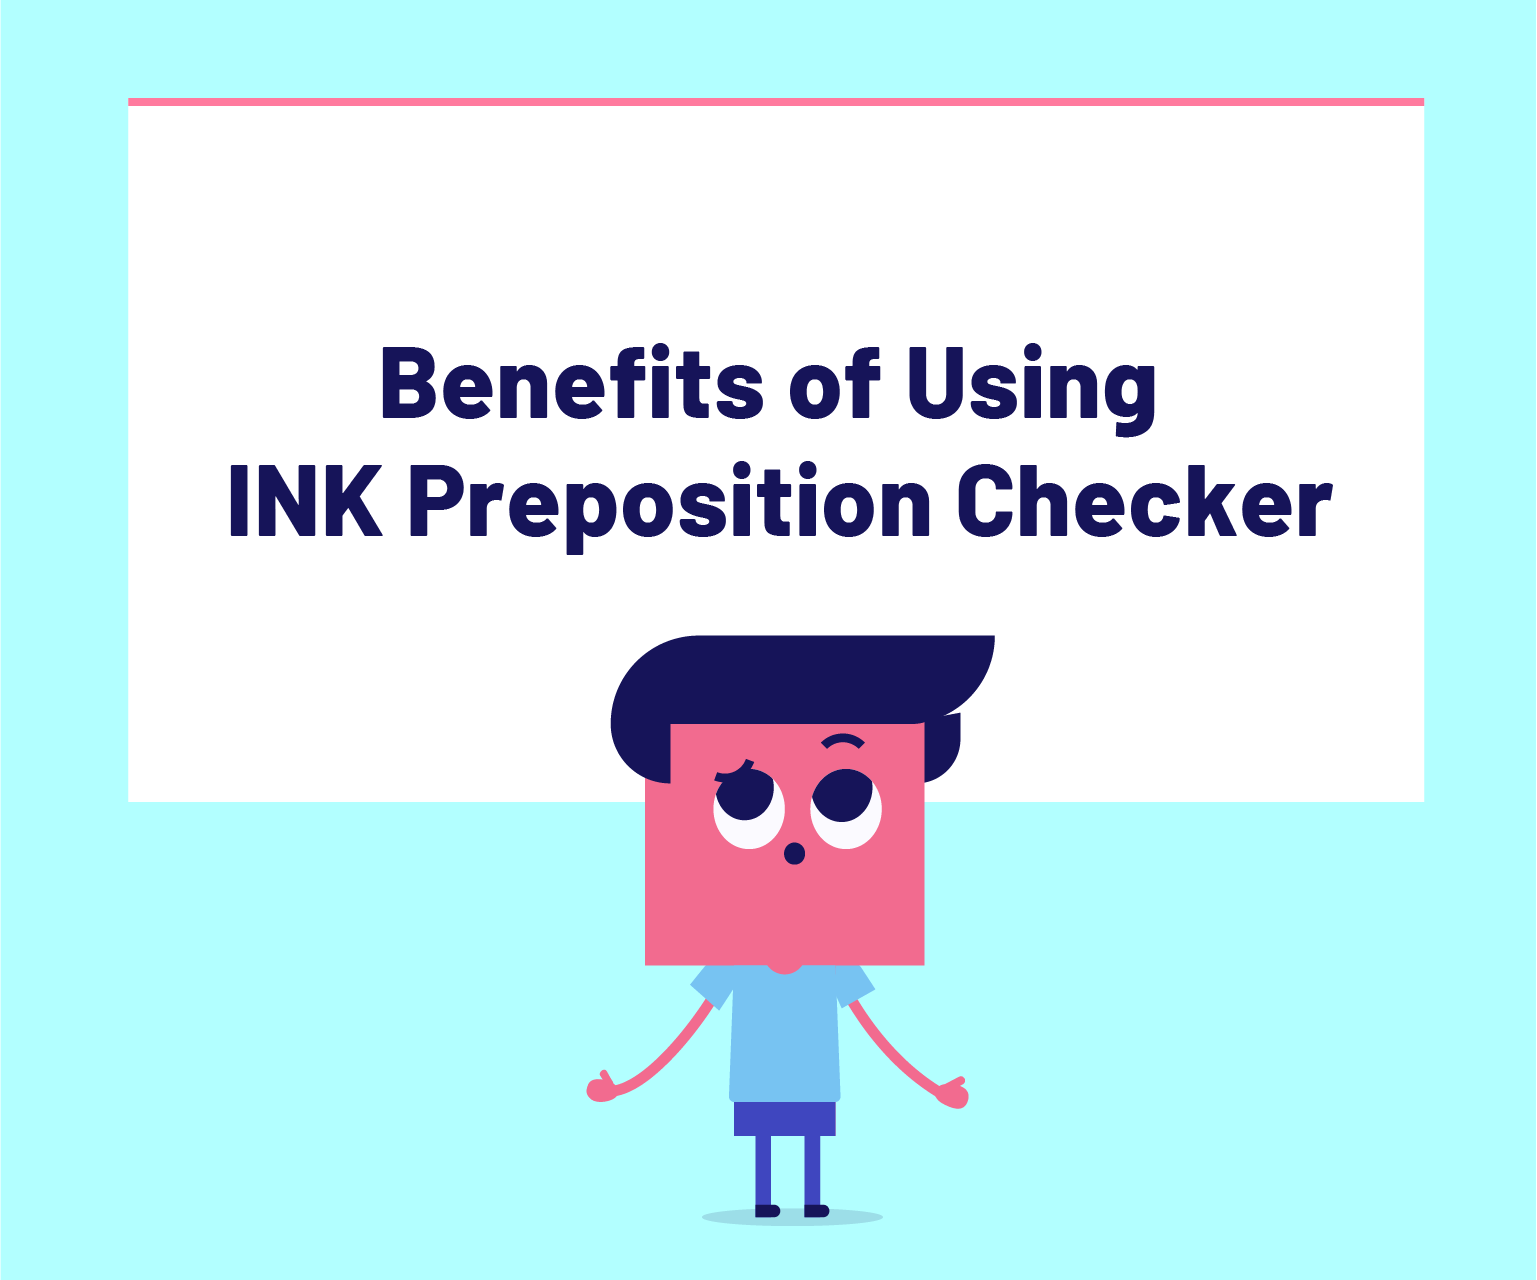 Benefits of using ink preposition checker